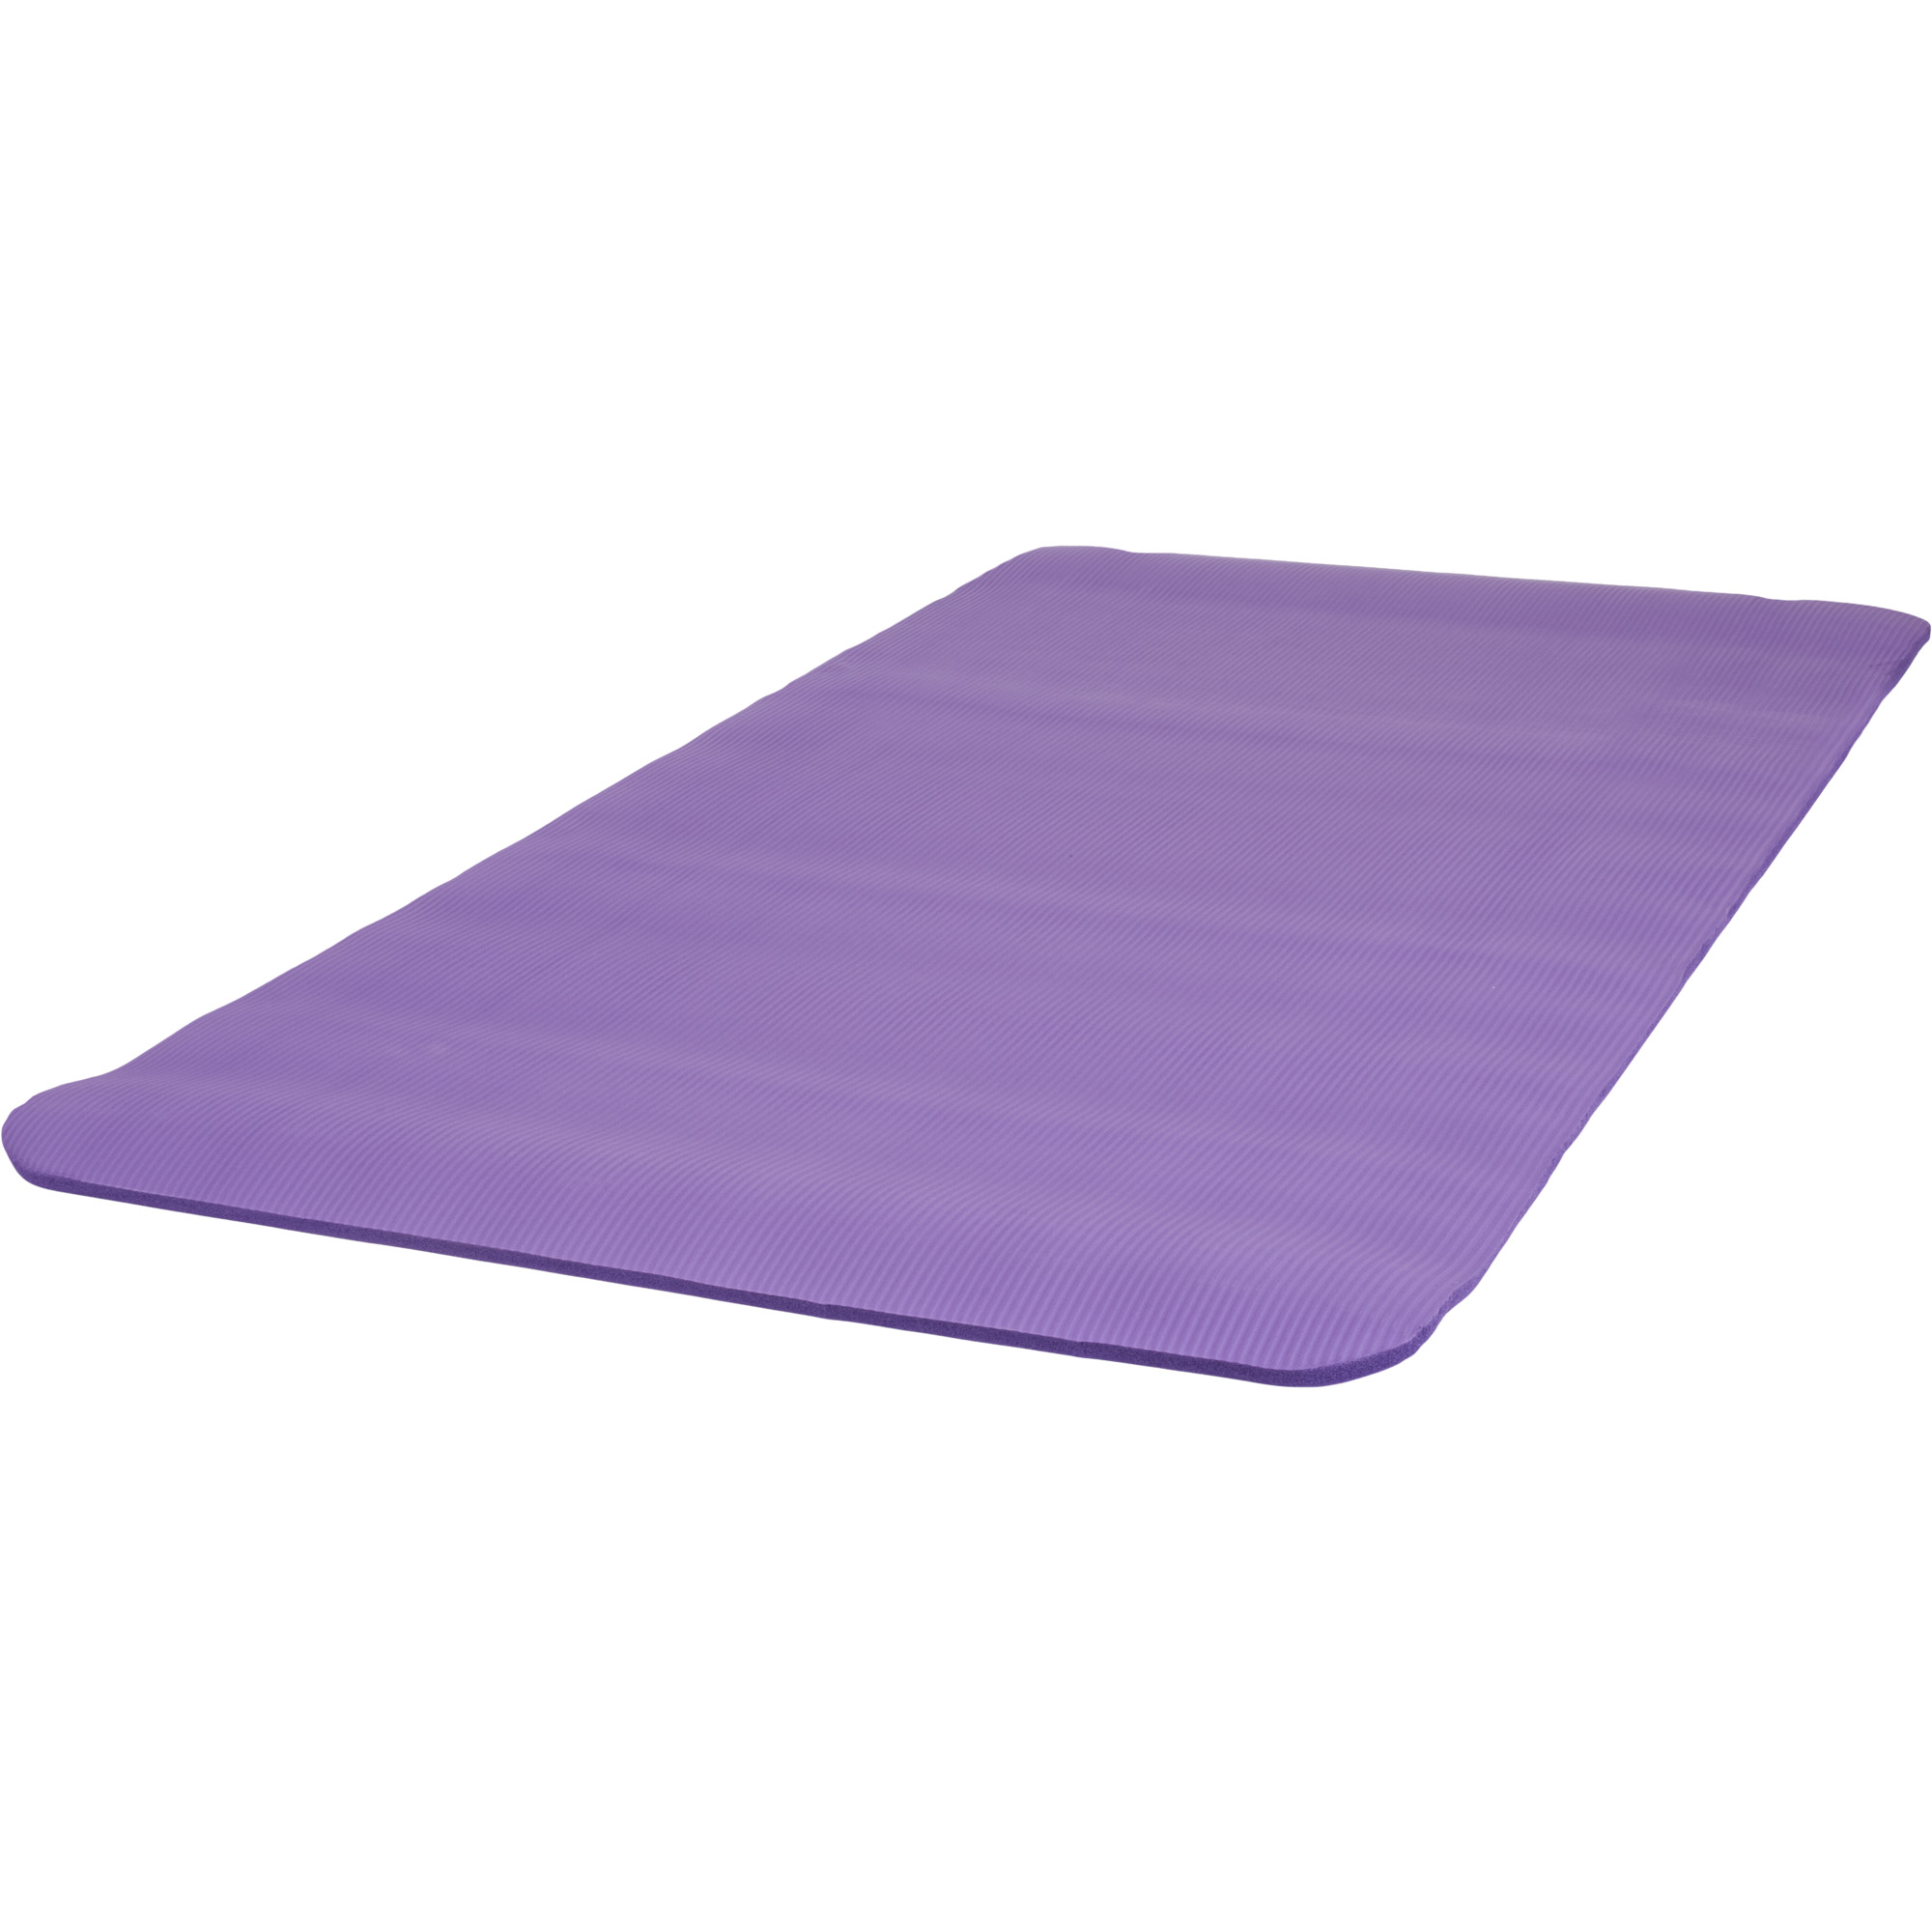 tapis en mousse pour le sport domicile violet tapisvioletxl. Black Bedroom Furniture Sets. Home Design Ideas